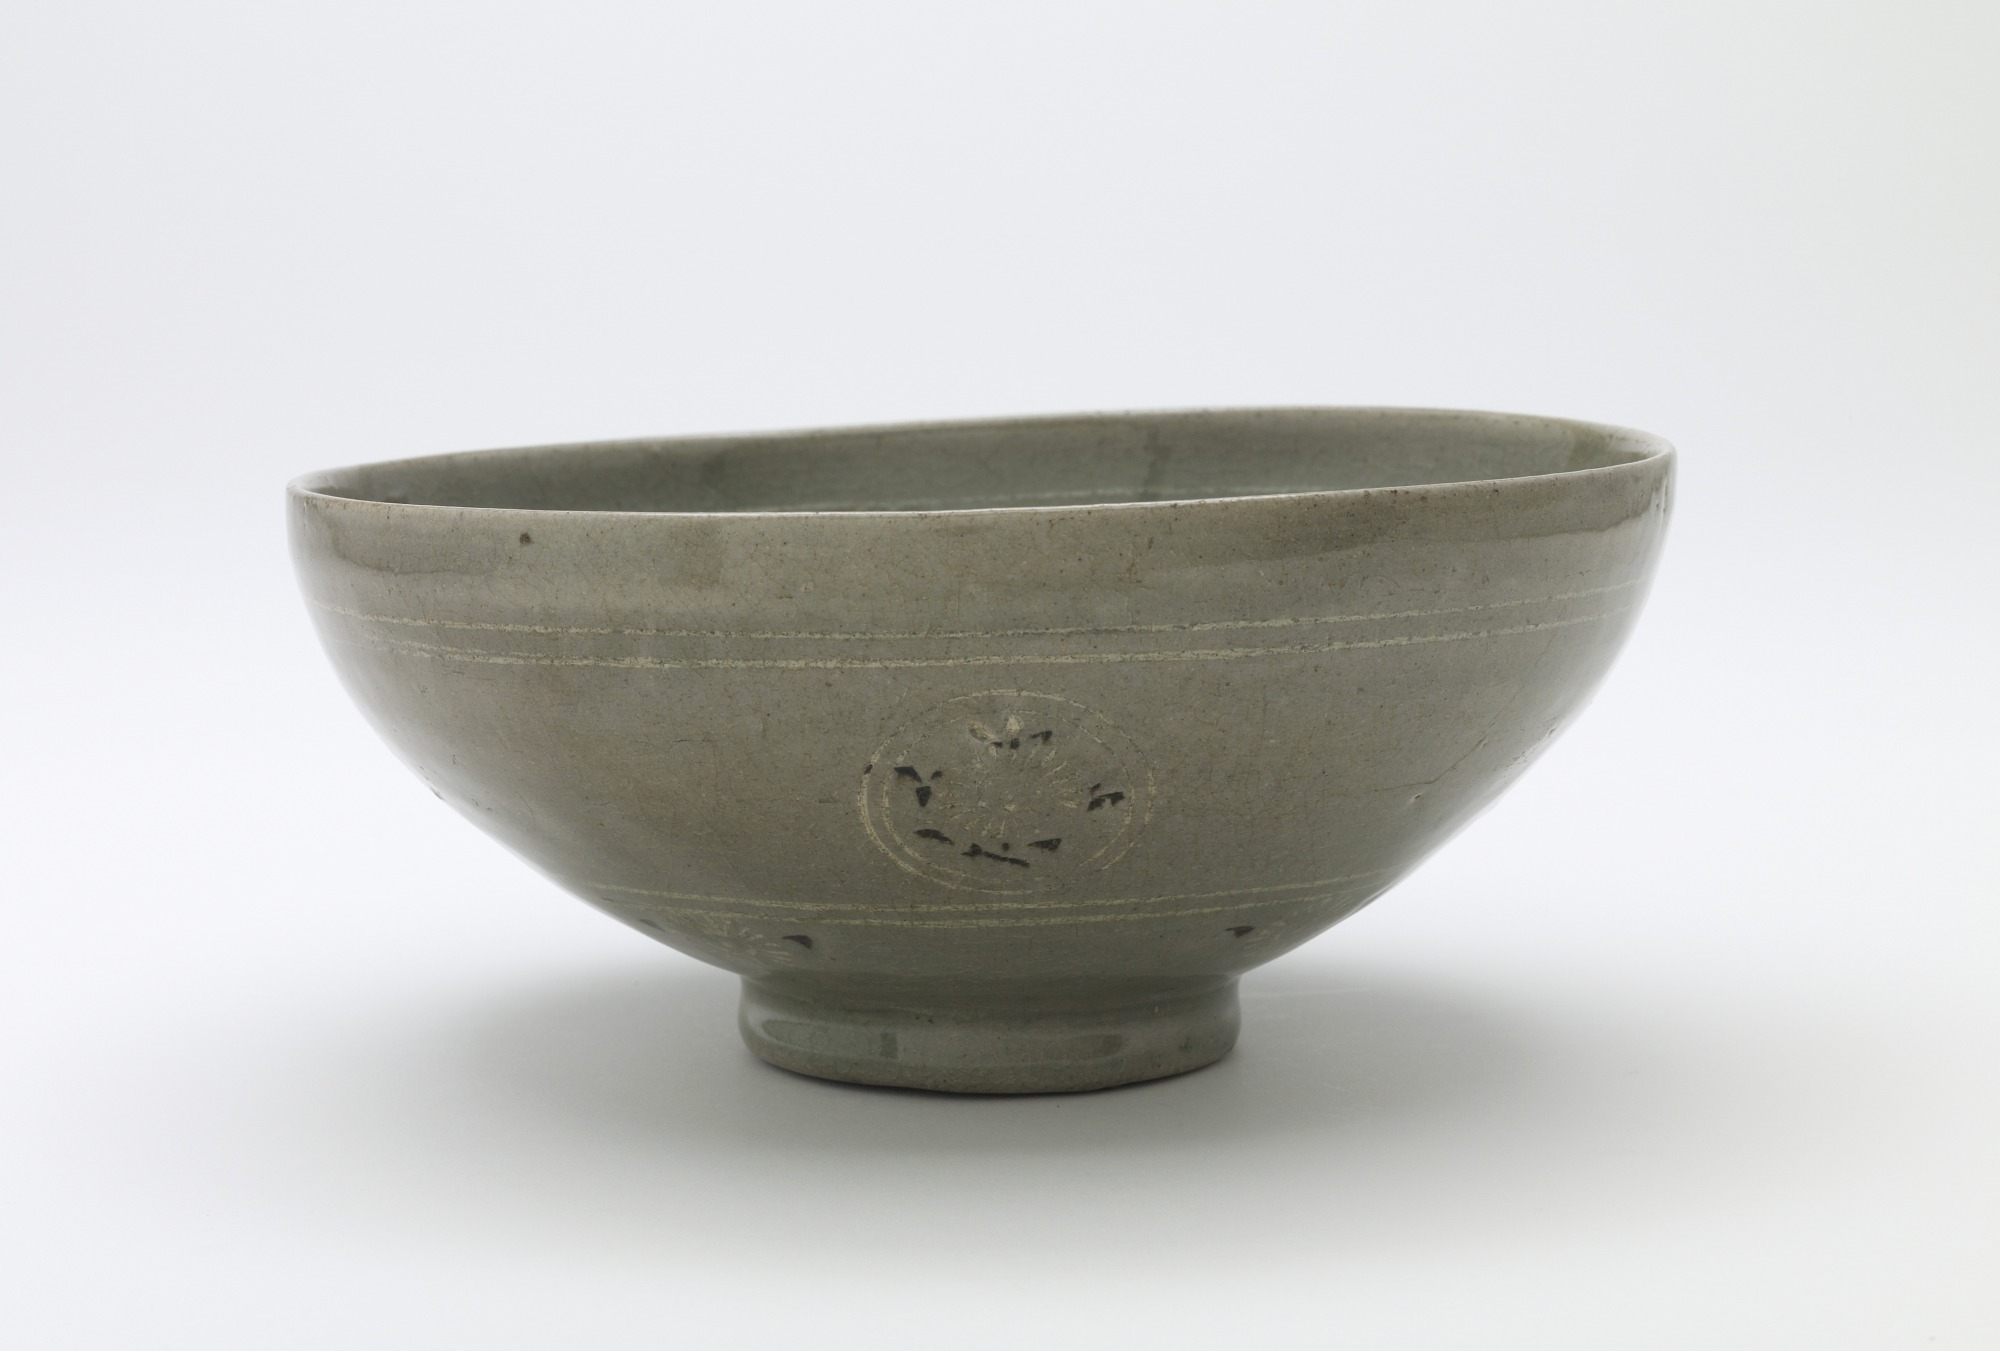 Bowl with inlaid design of chrysanthemum and four lichee clusters, profile